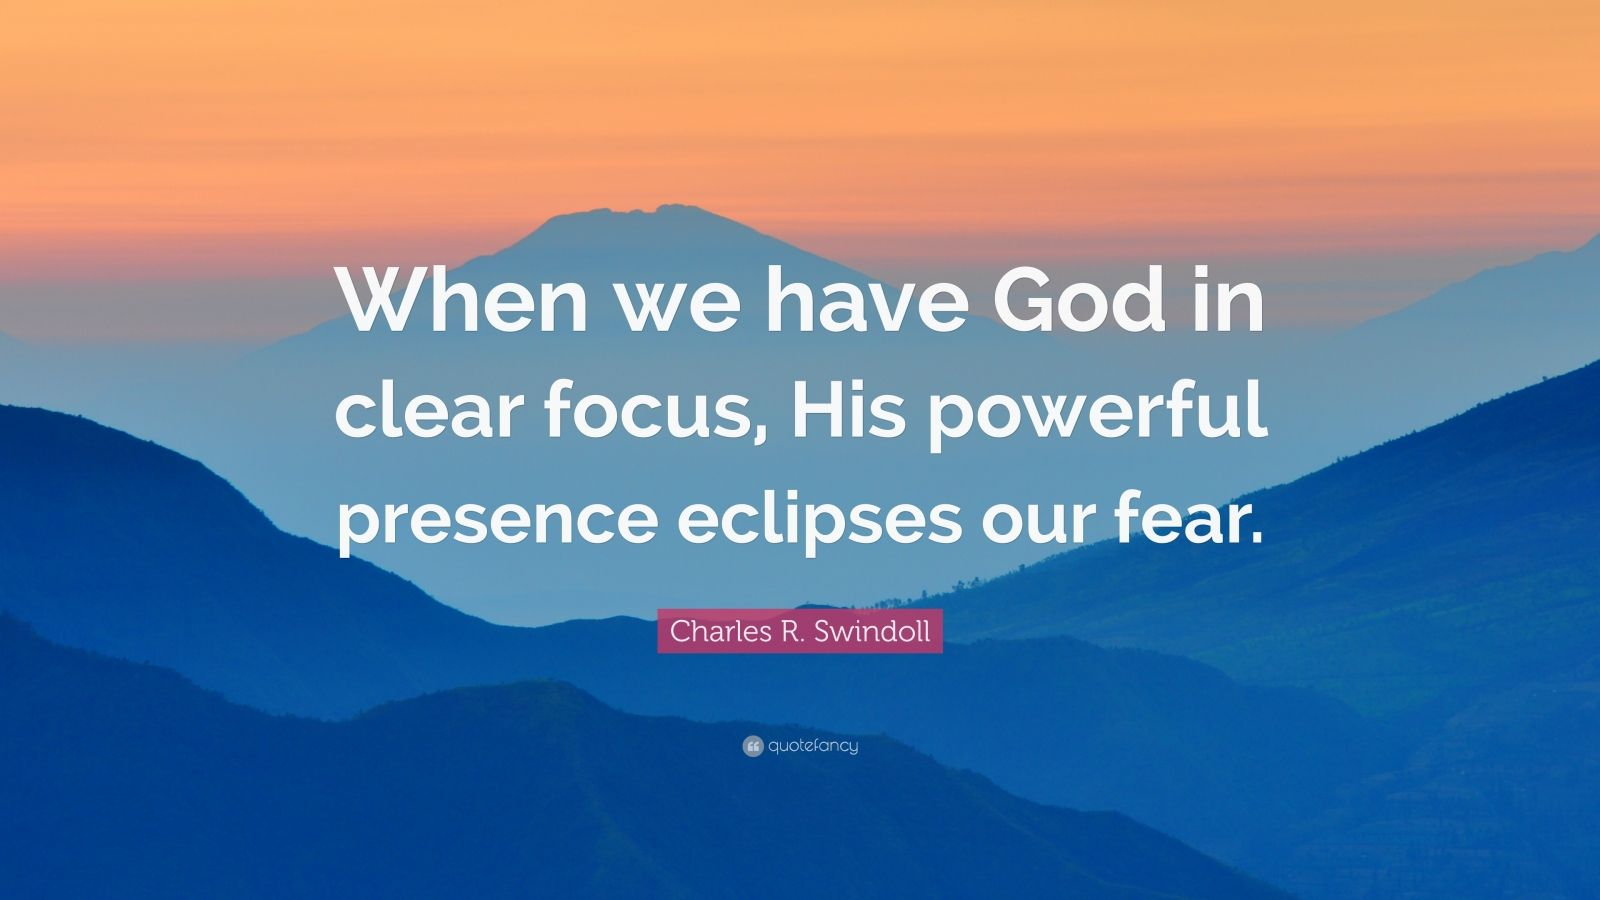 """Charles R. Swindoll Quote: """"When we have God in clear focus, His powerful presence eclipses our fear."""""""